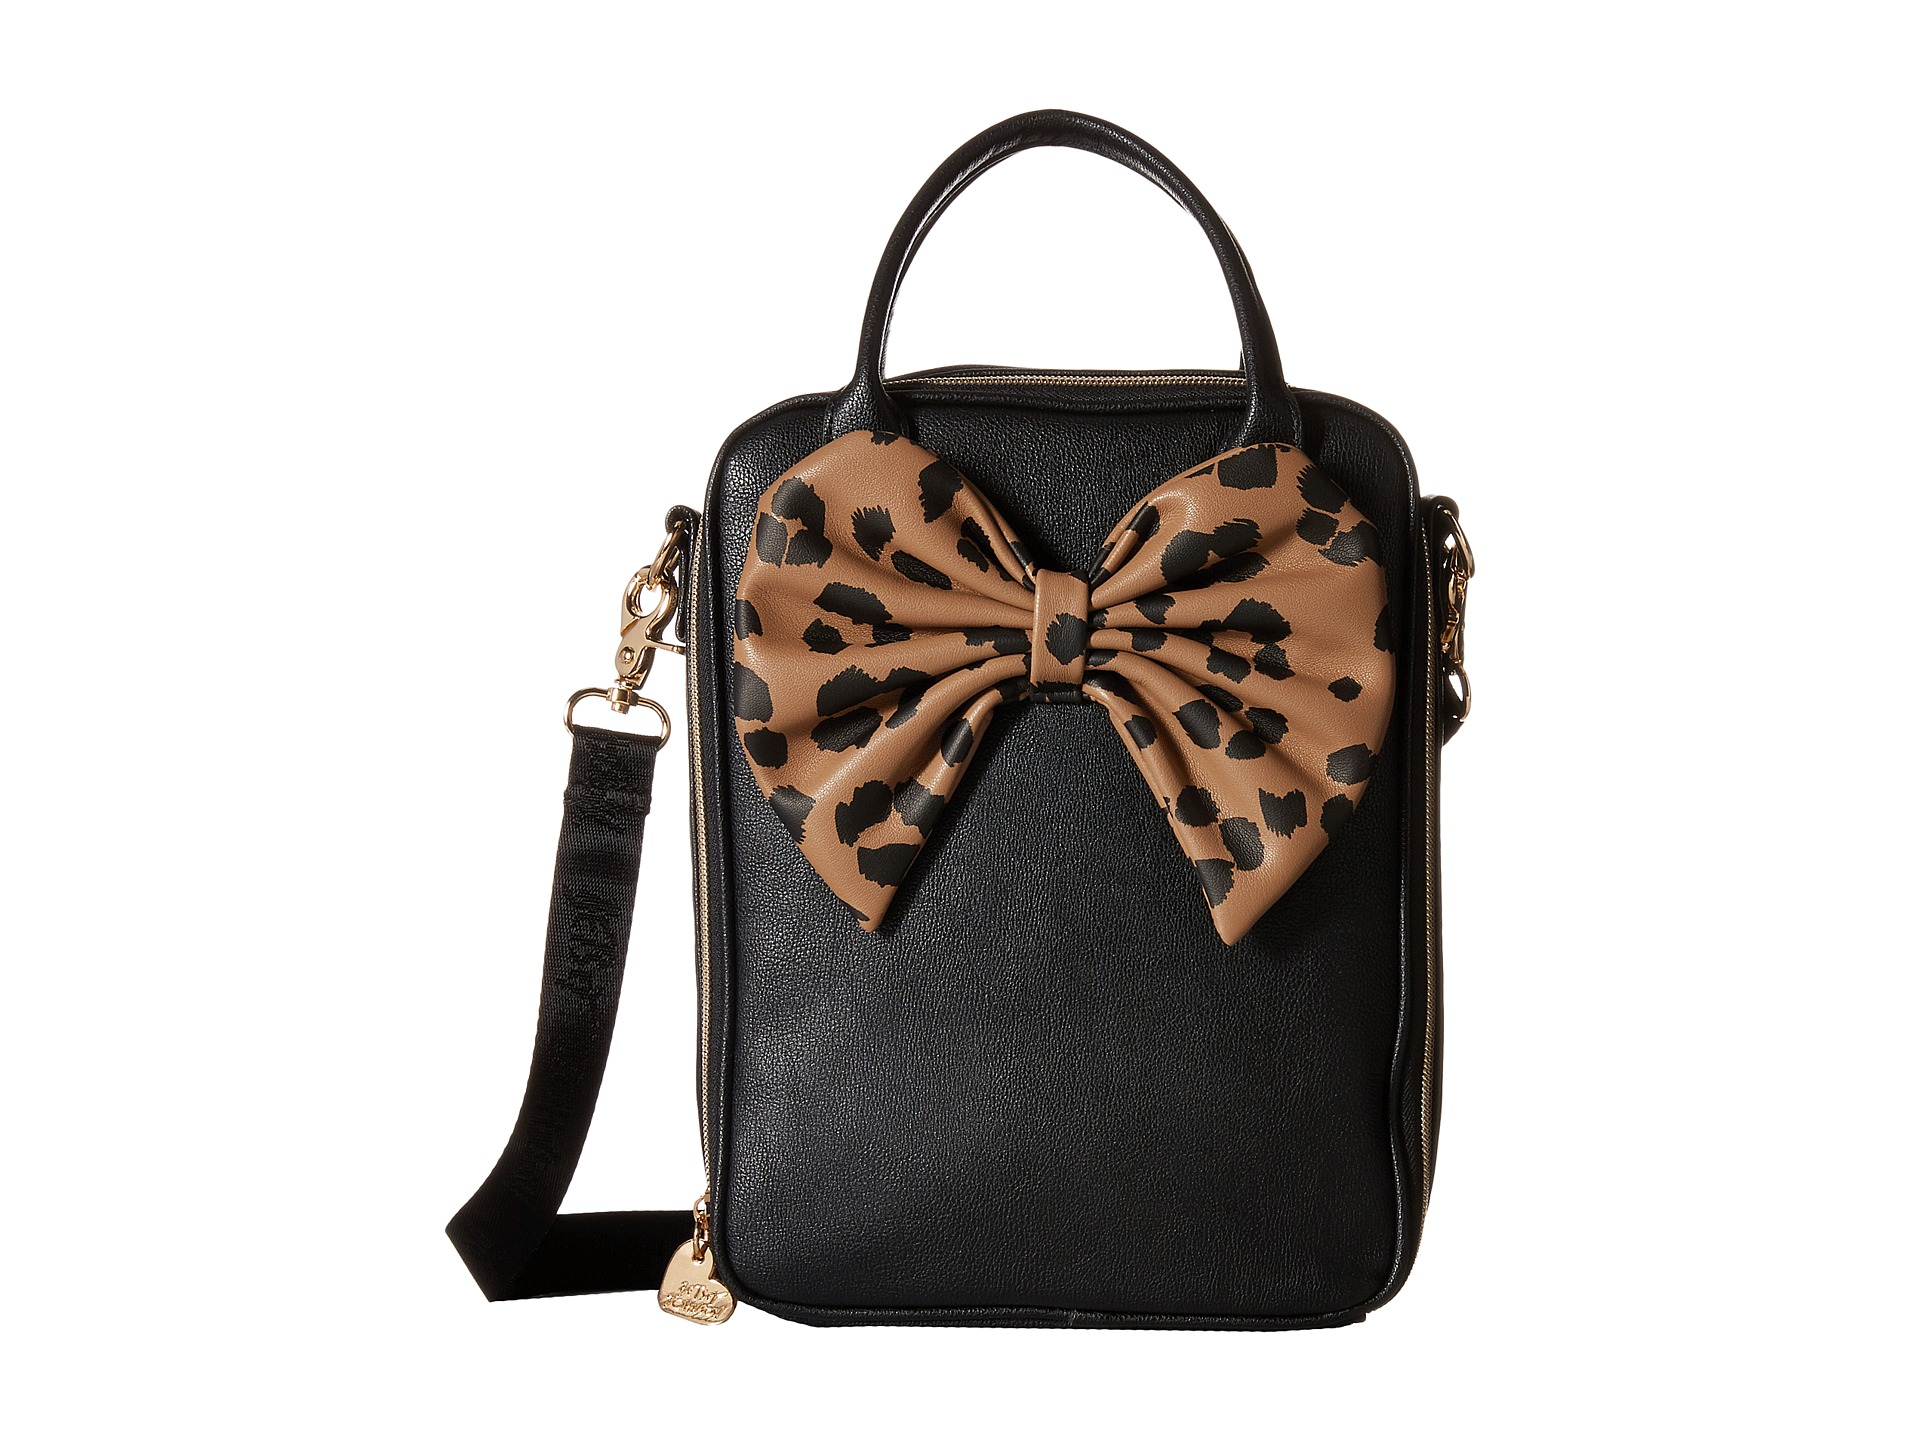 Betsey Johnson Bow Tails Lunch Tote In Black Leopard Lyst